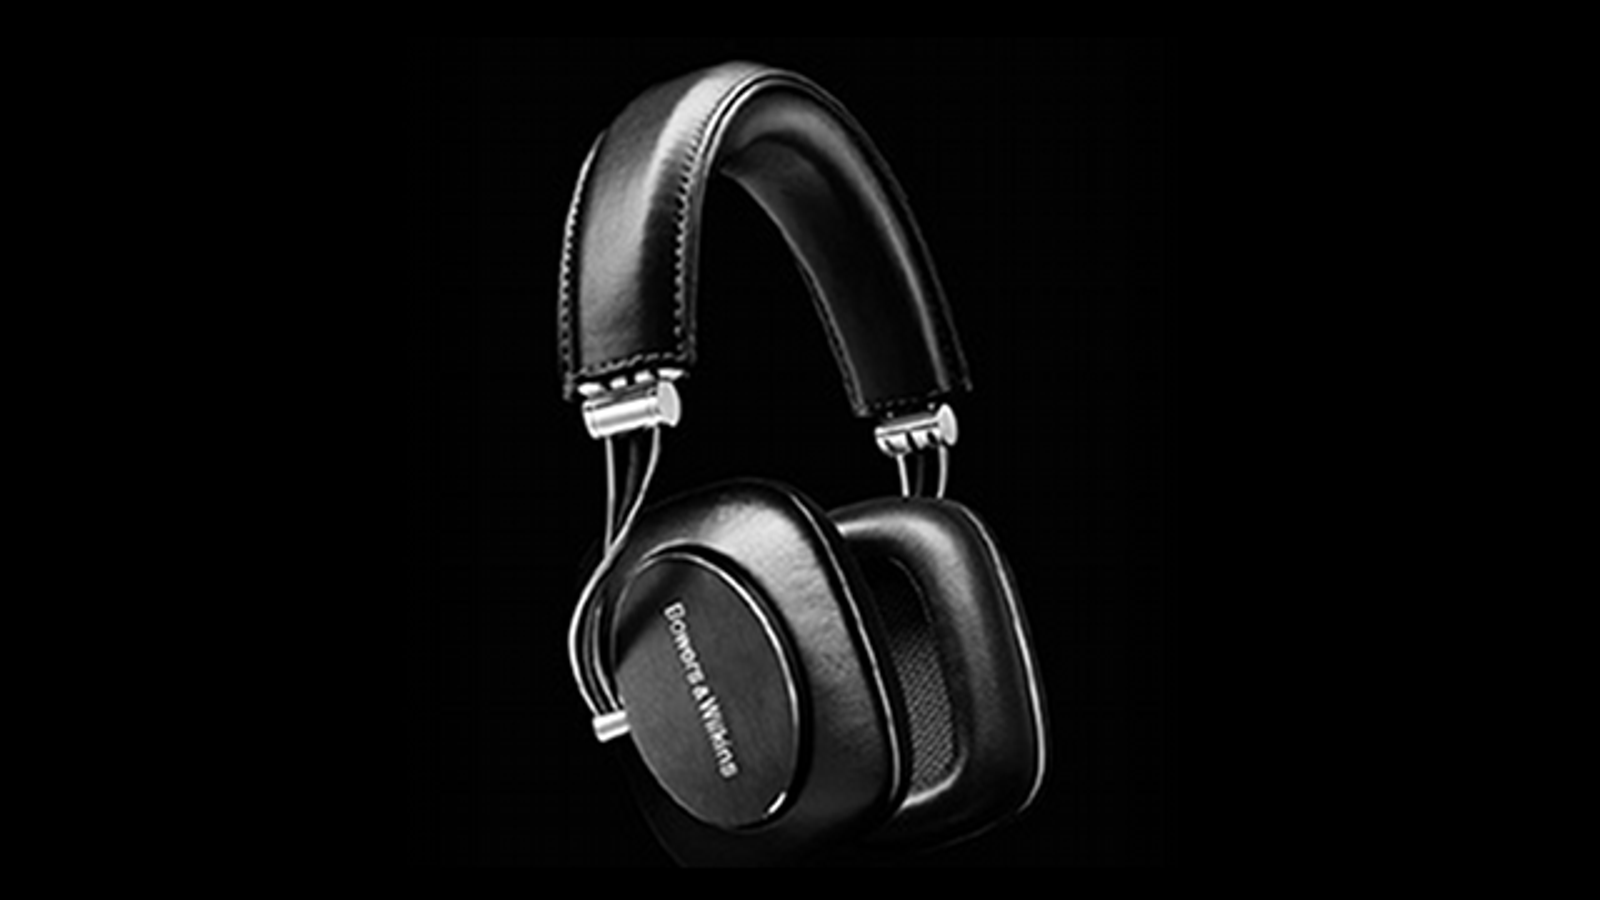 wireless headphones kids for car - Bowers & Wilkins P7 Headphones: Over-Ear Excellence, Over-the-Top Price